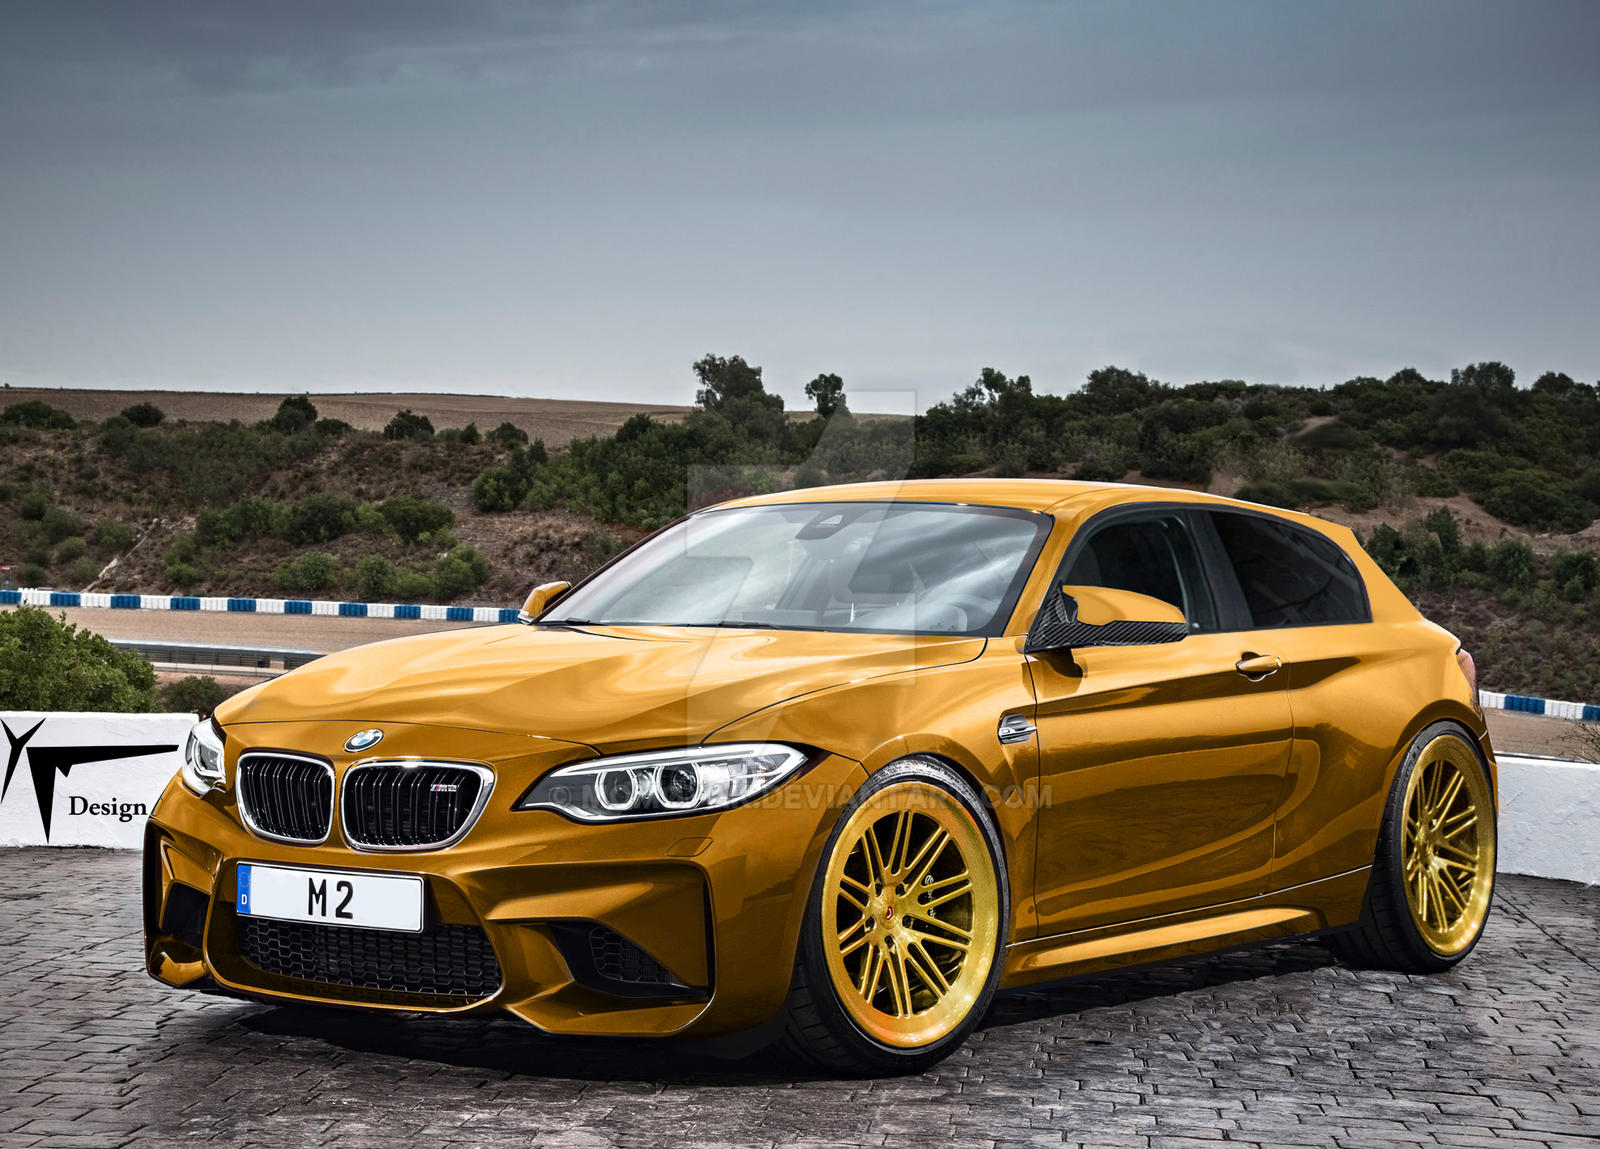 Bmw F87 M2 Shooting Break Gold By Momoyak Design By Momoyak On Deviantart